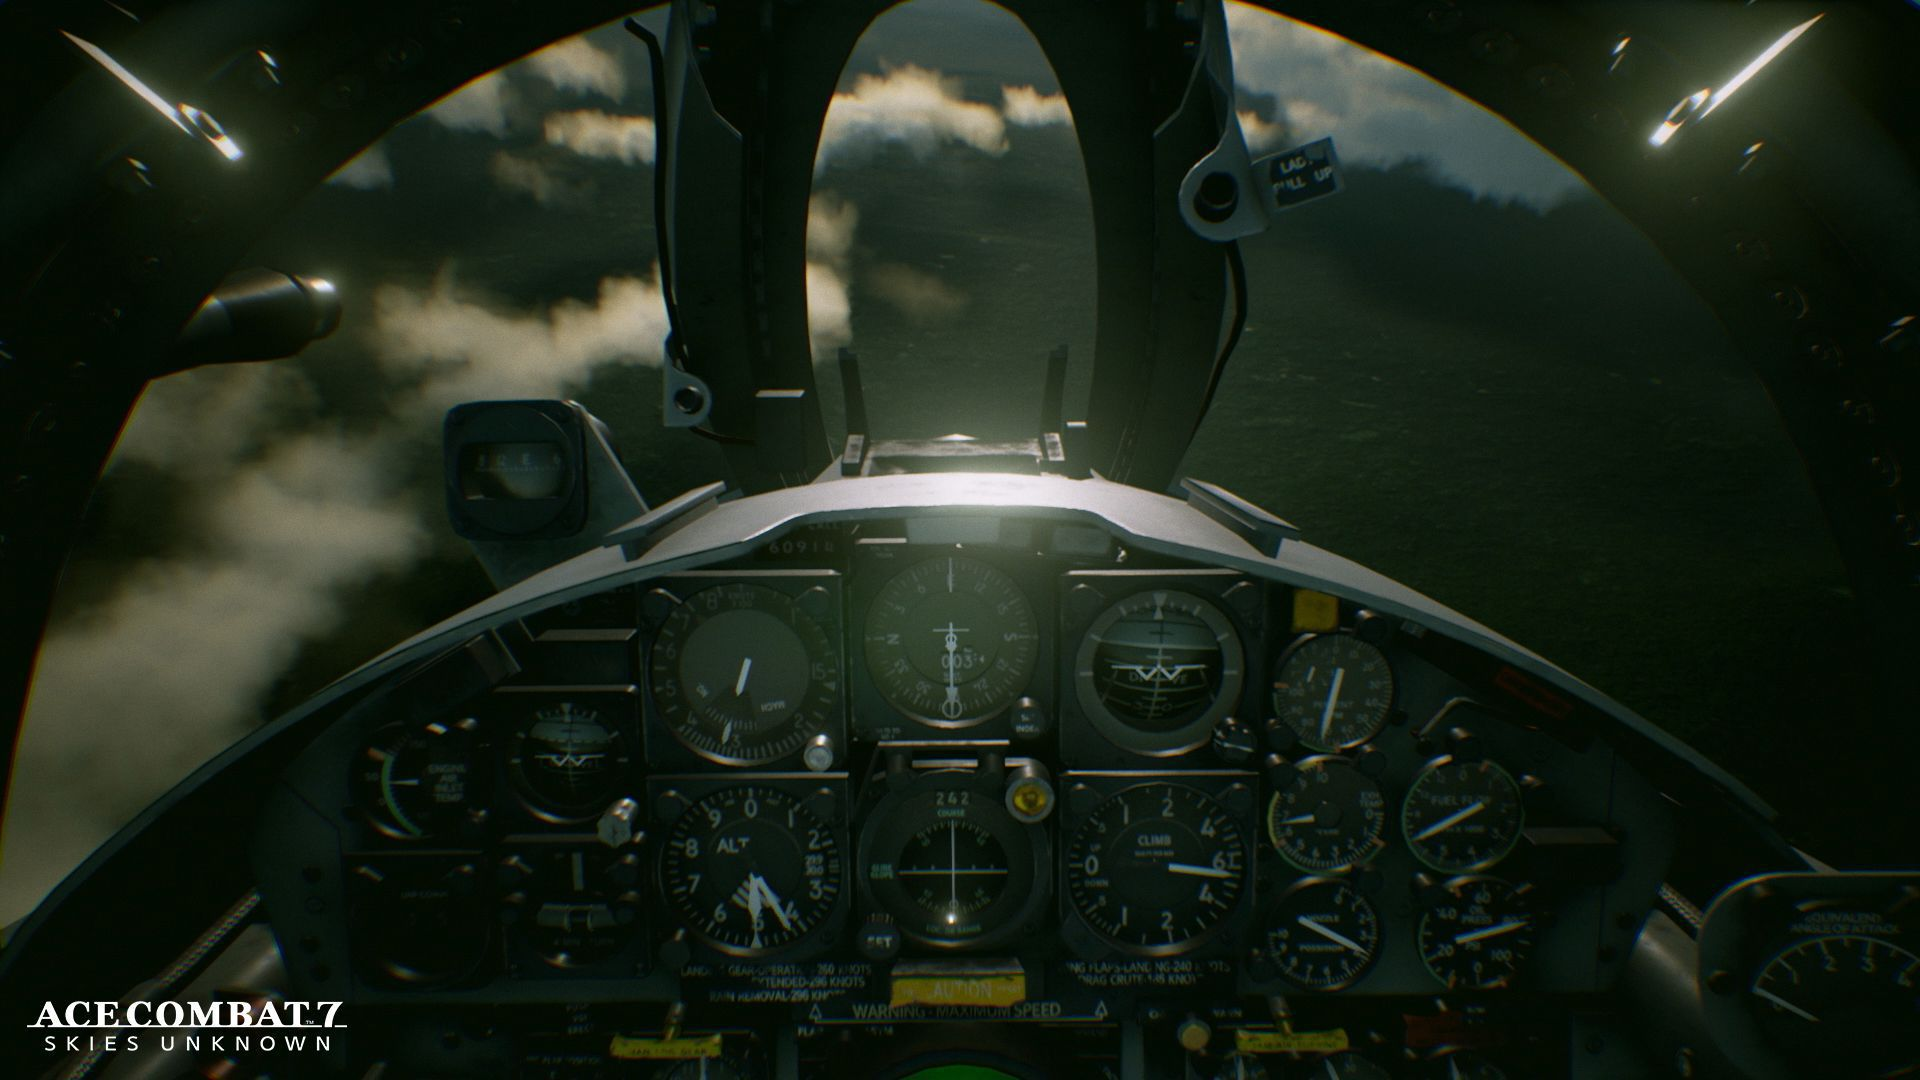 Ace Combat 7 Skies Unknown Wallpapers HD